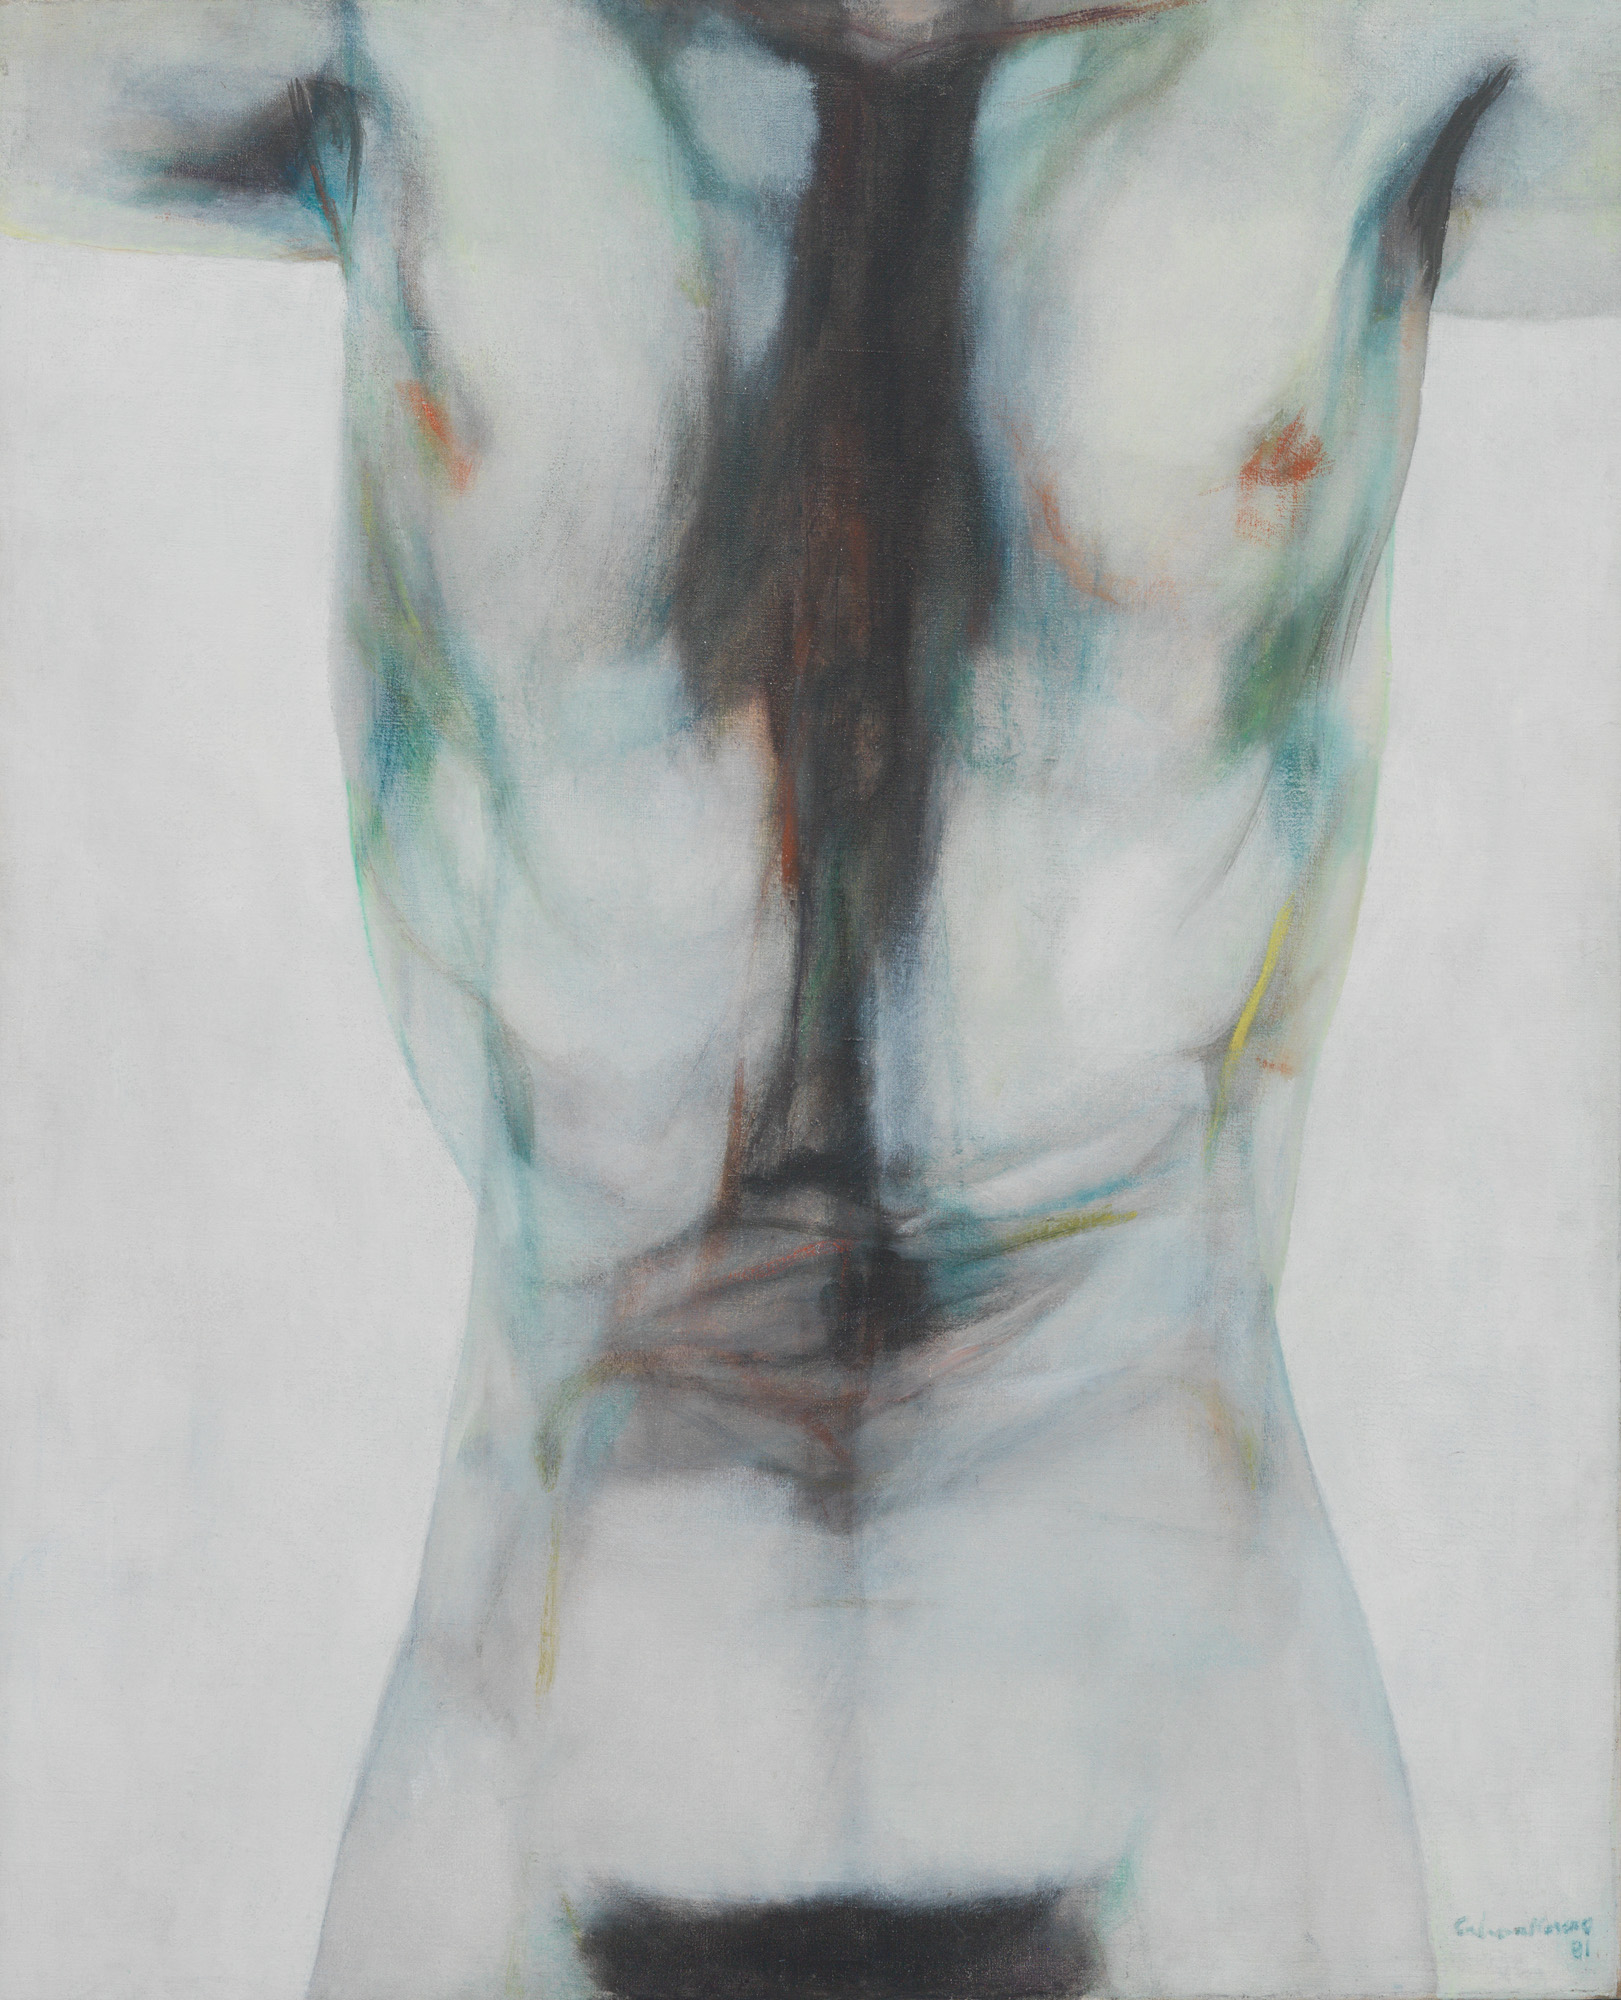 Bandera blanca para un desnudo (White Flag for a Nude  Object), 1981. Oil on canvas. Framed: 51 1/4 x 32 1/4 x 3 in.